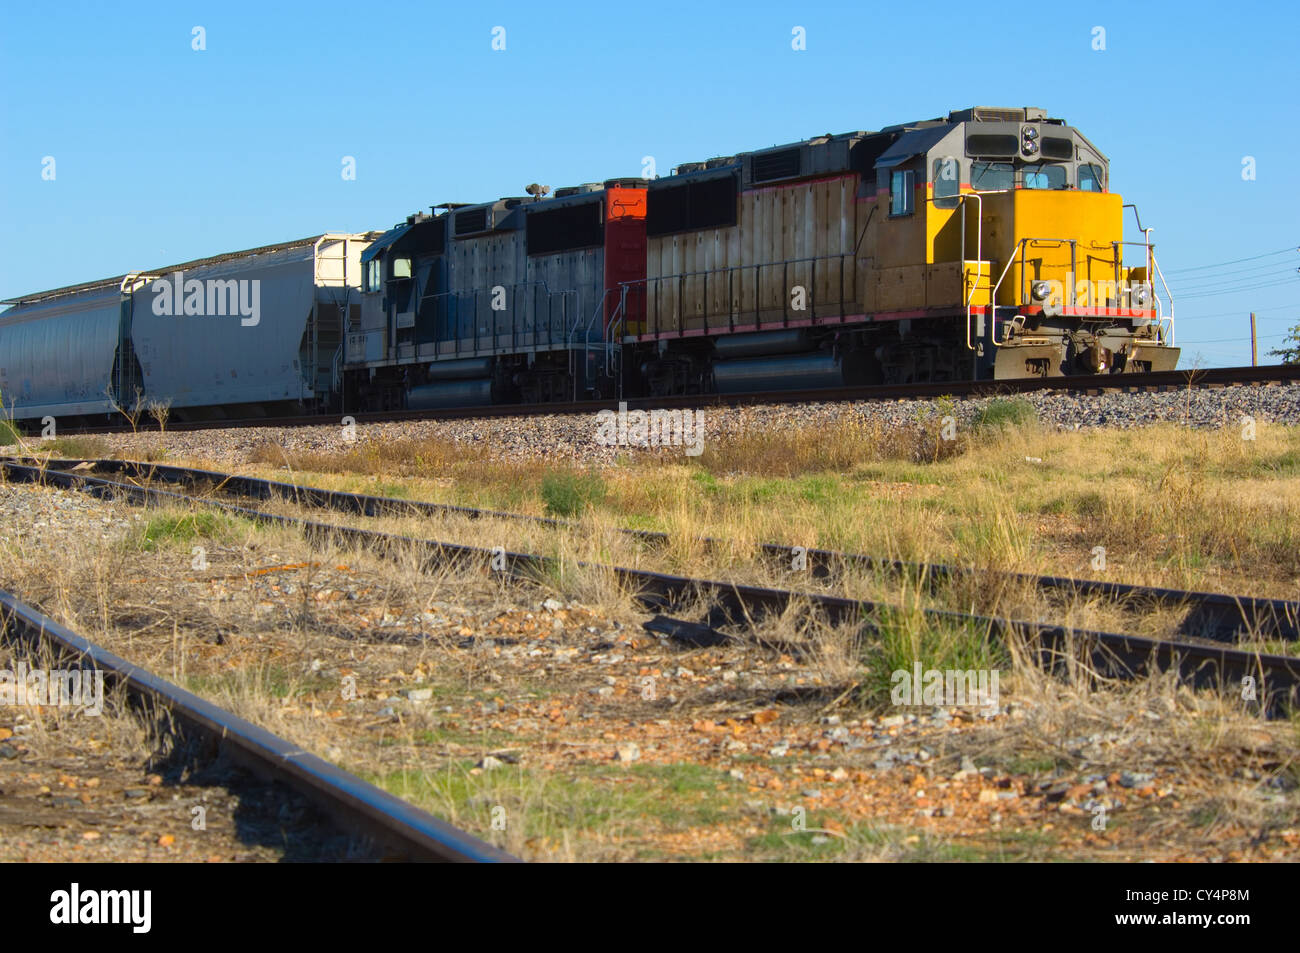 train with yellow engine on connection tracks - Stock Image